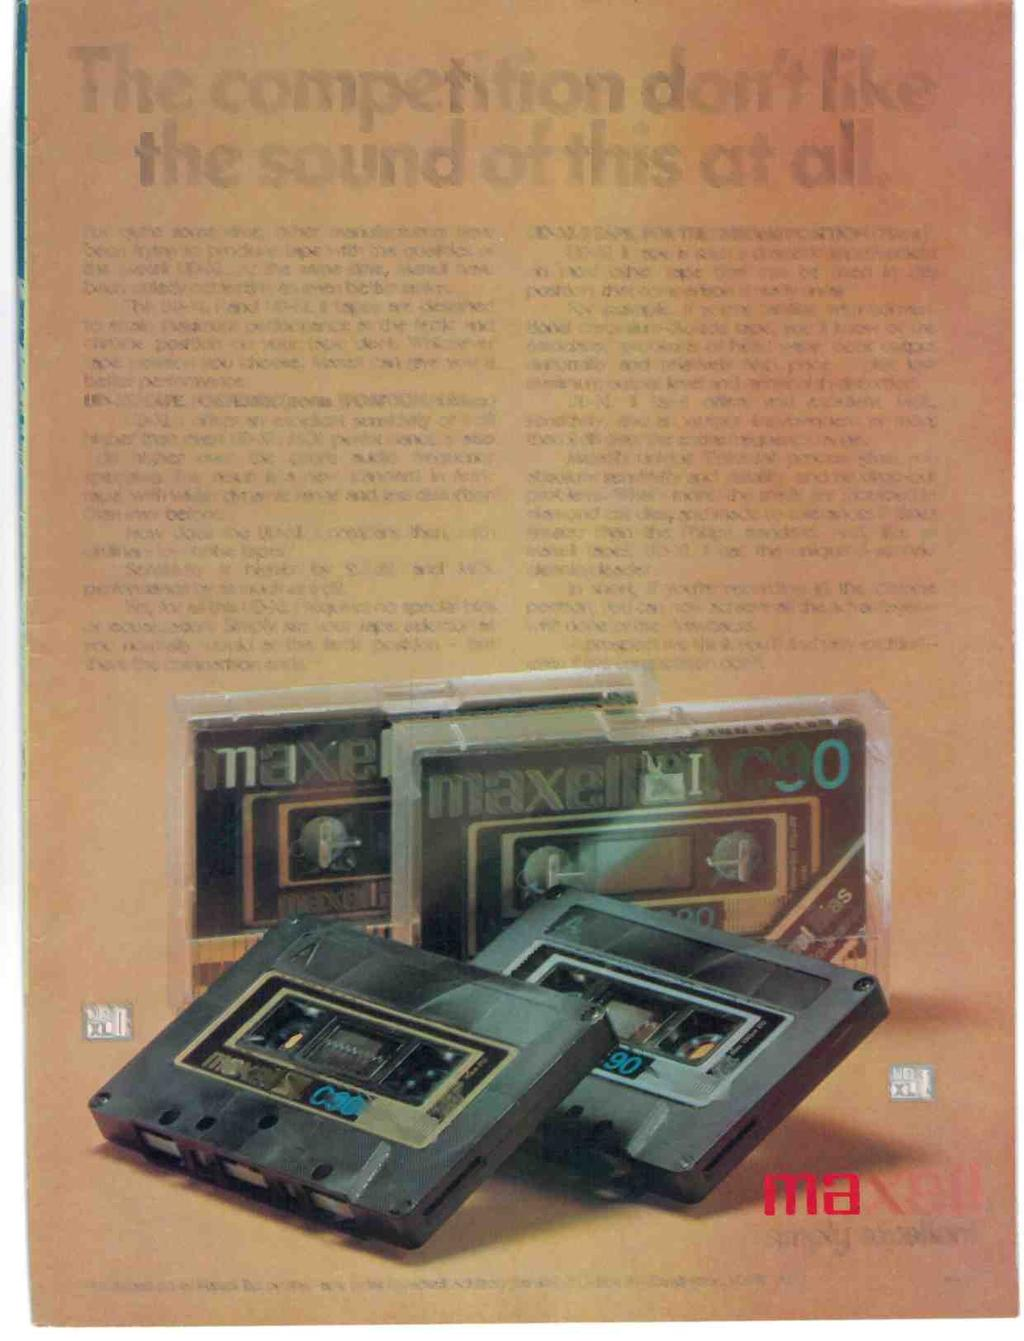 The competition don't like the sound of this at all. For quite some time, other manufacturers have been trying to produce tape with the qualities of the Maxell UD-XL.